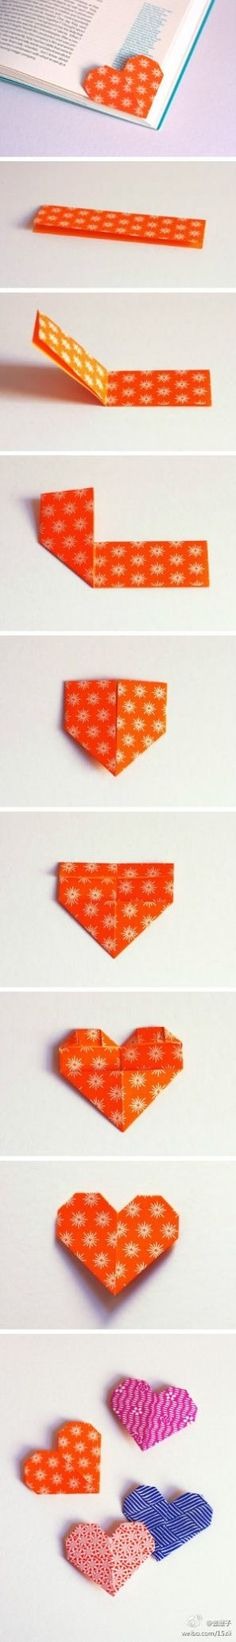 Diy origami heart bookmark